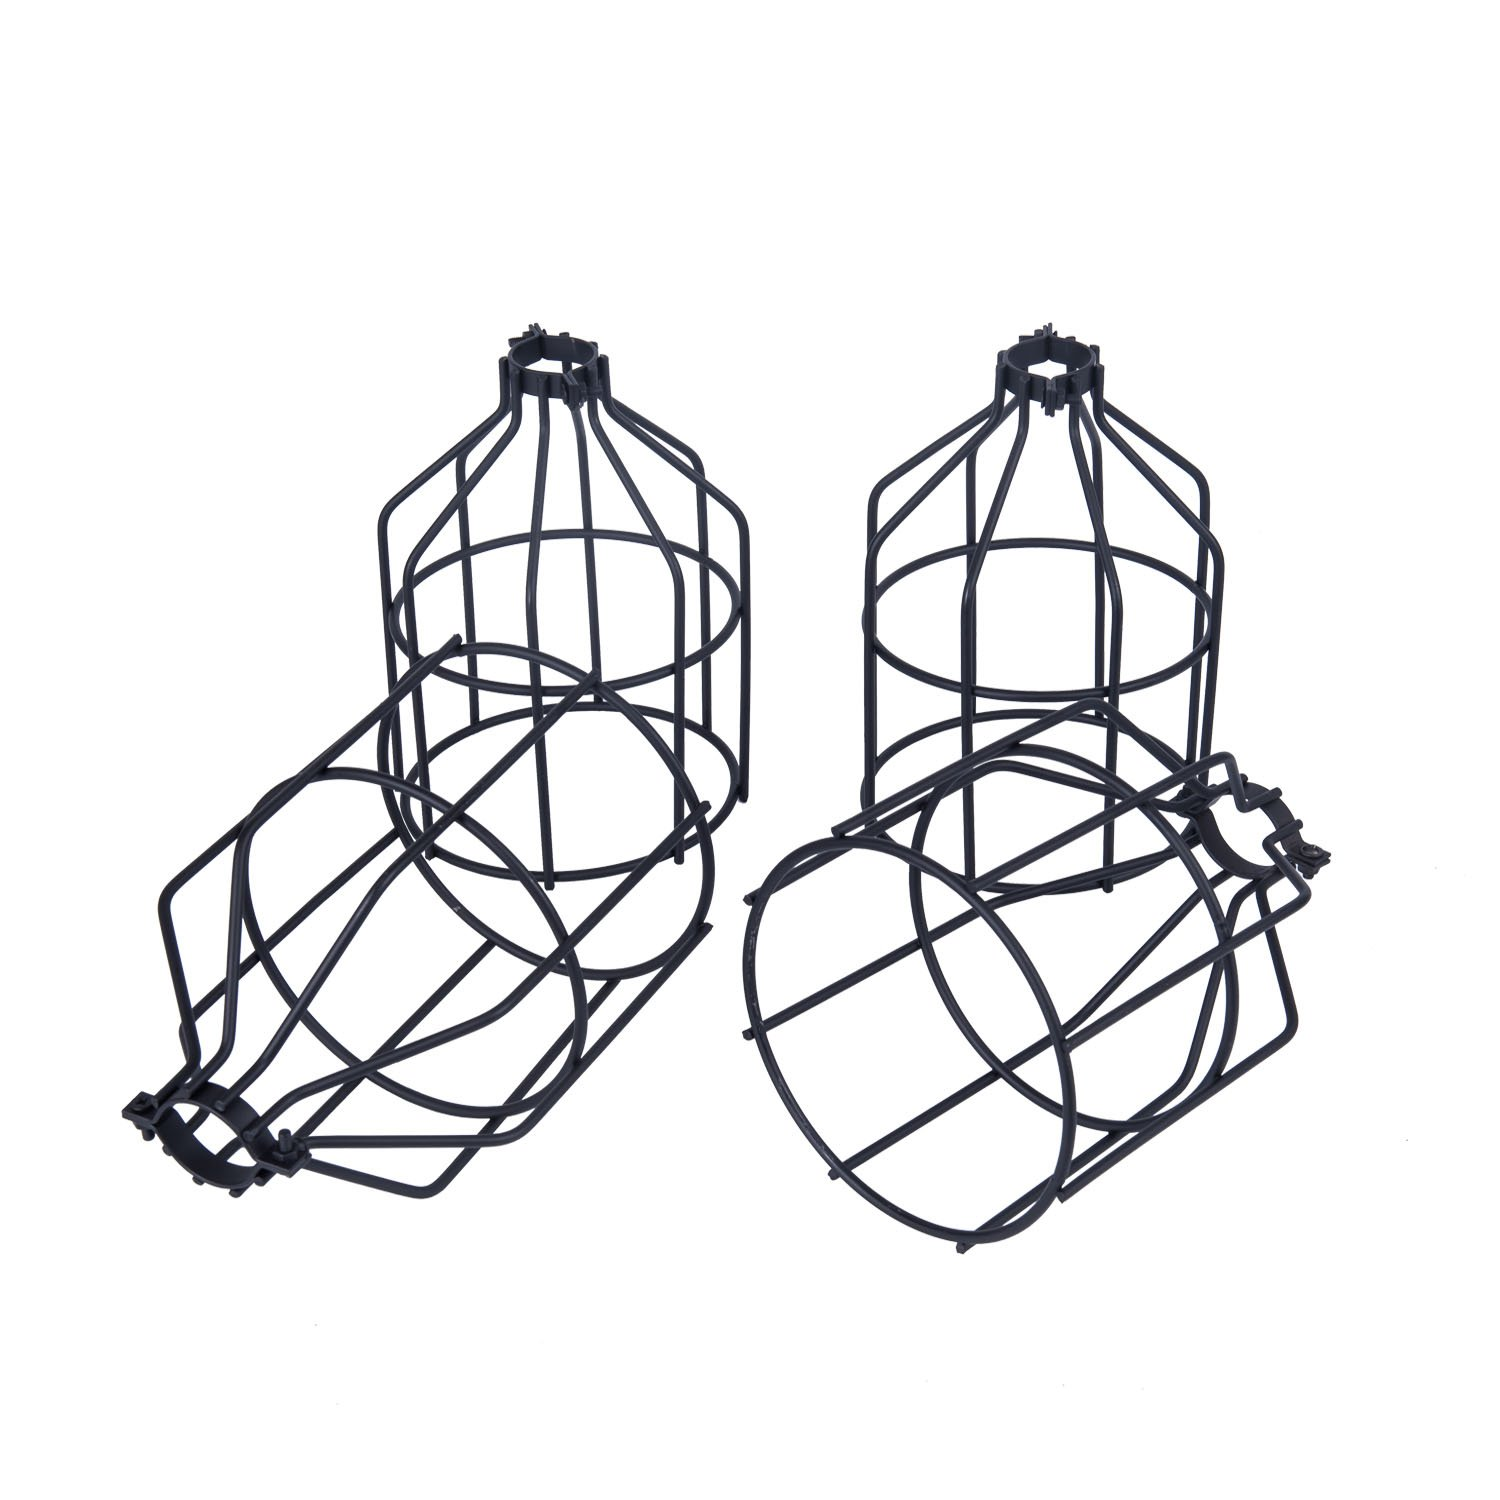 Yaqi Lighting 4 Pack Metal Light Bulb Guard Open Style Black Wiring A Lamp Holder Industrial Wire Cage